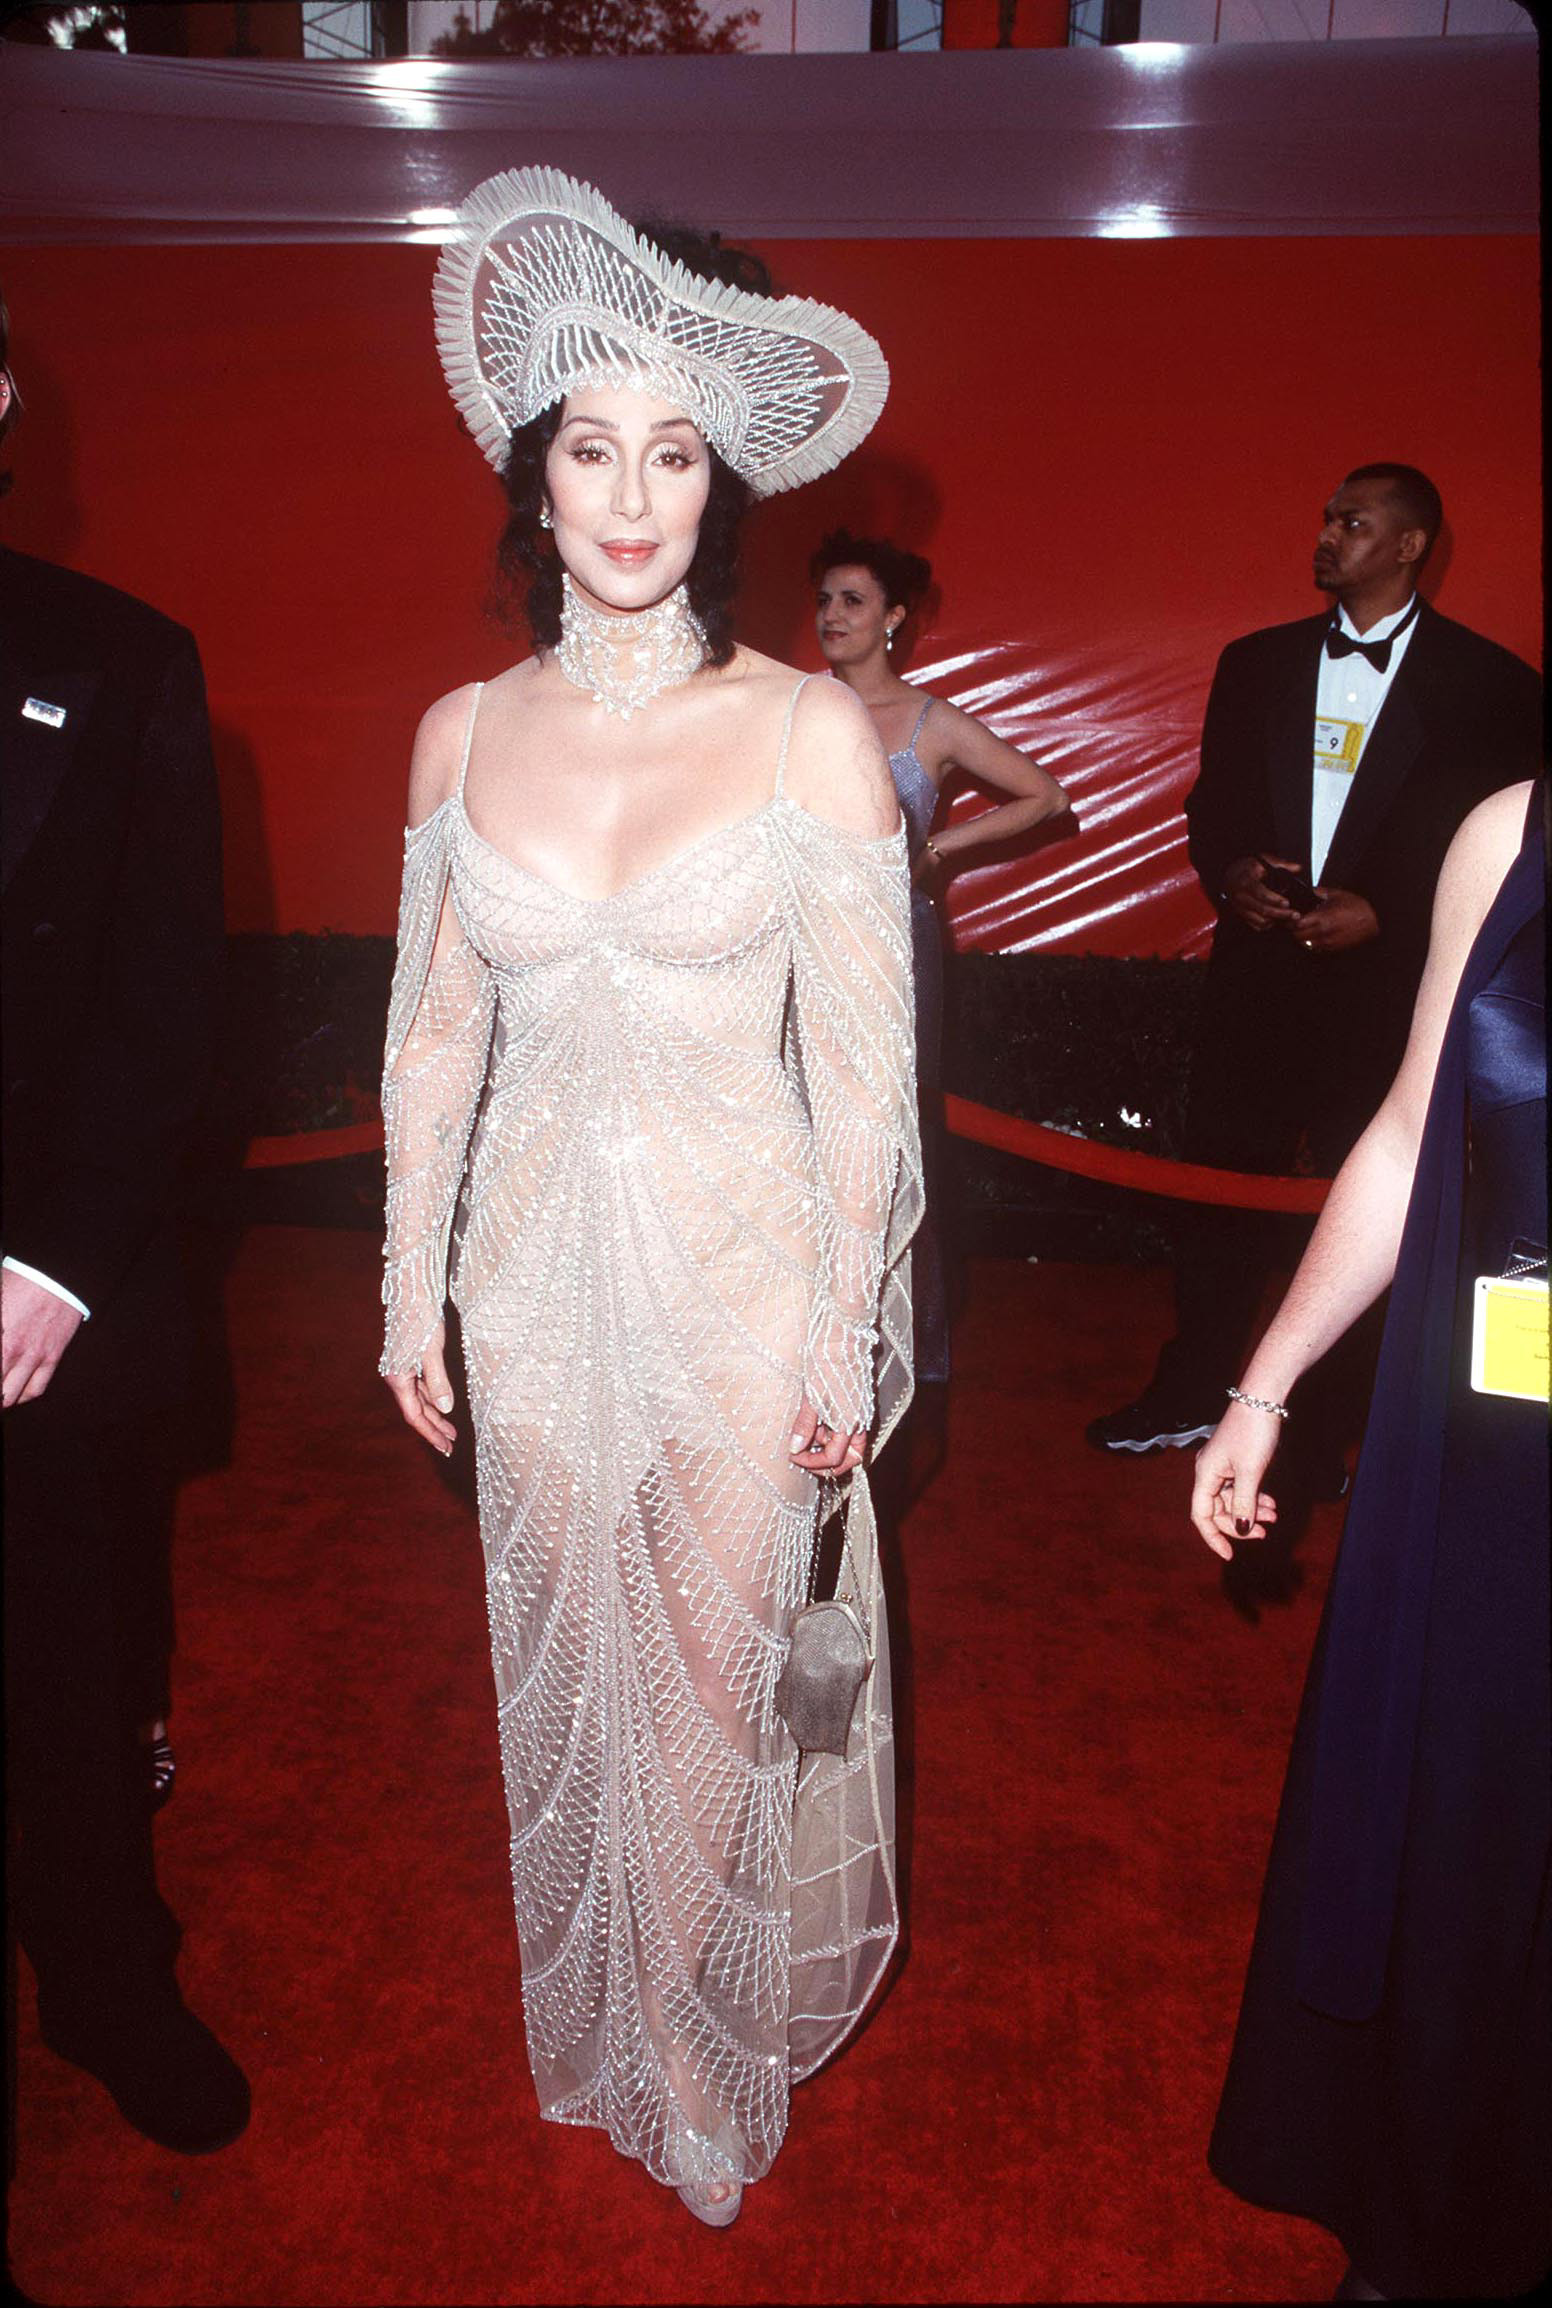 Cher during the 70th Annual Academy Awards in Los Angeles on March 23, 1998.